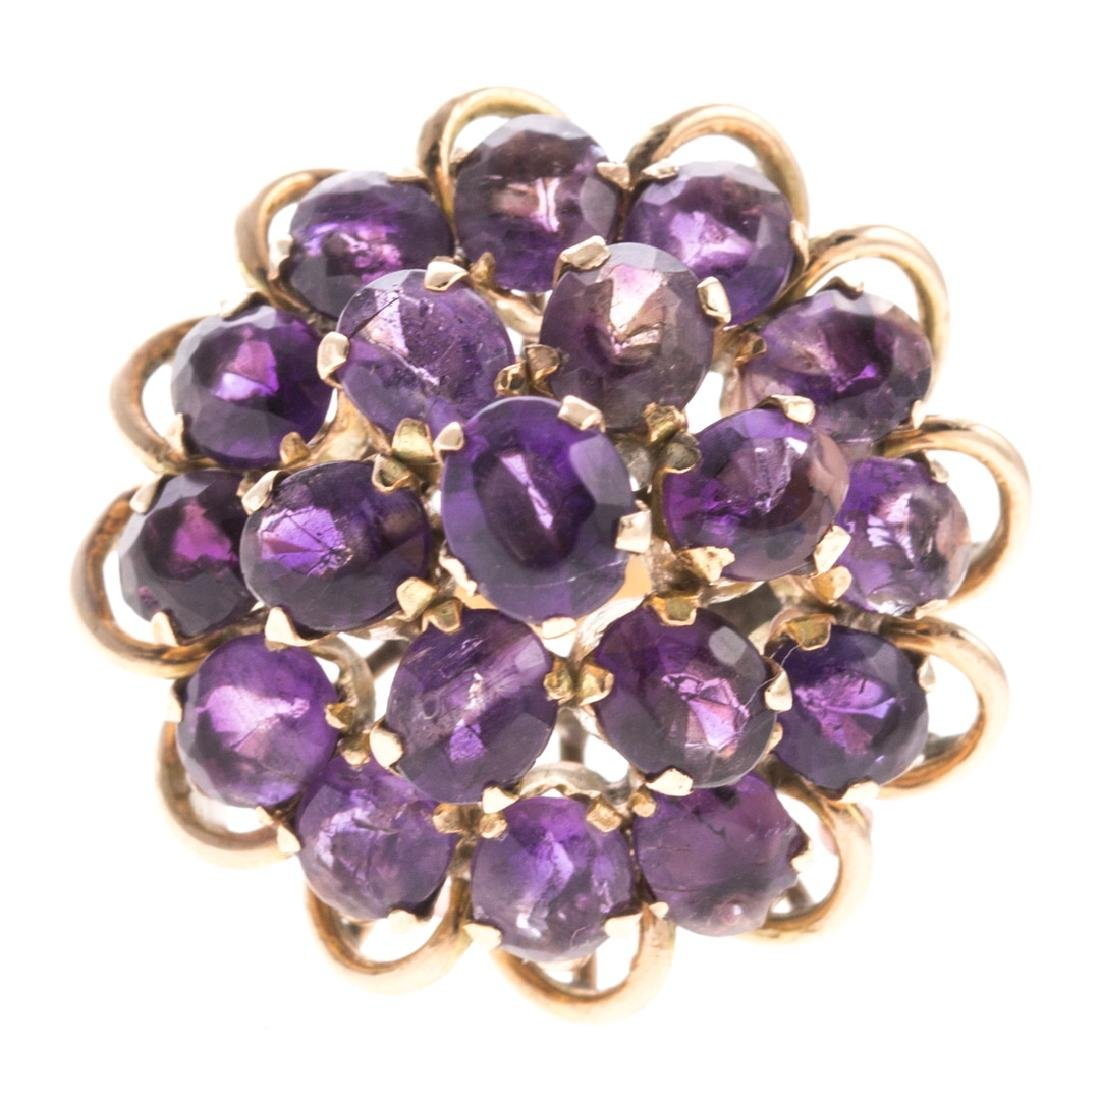 A Lady's Amethyst Ring & Earrings - 2